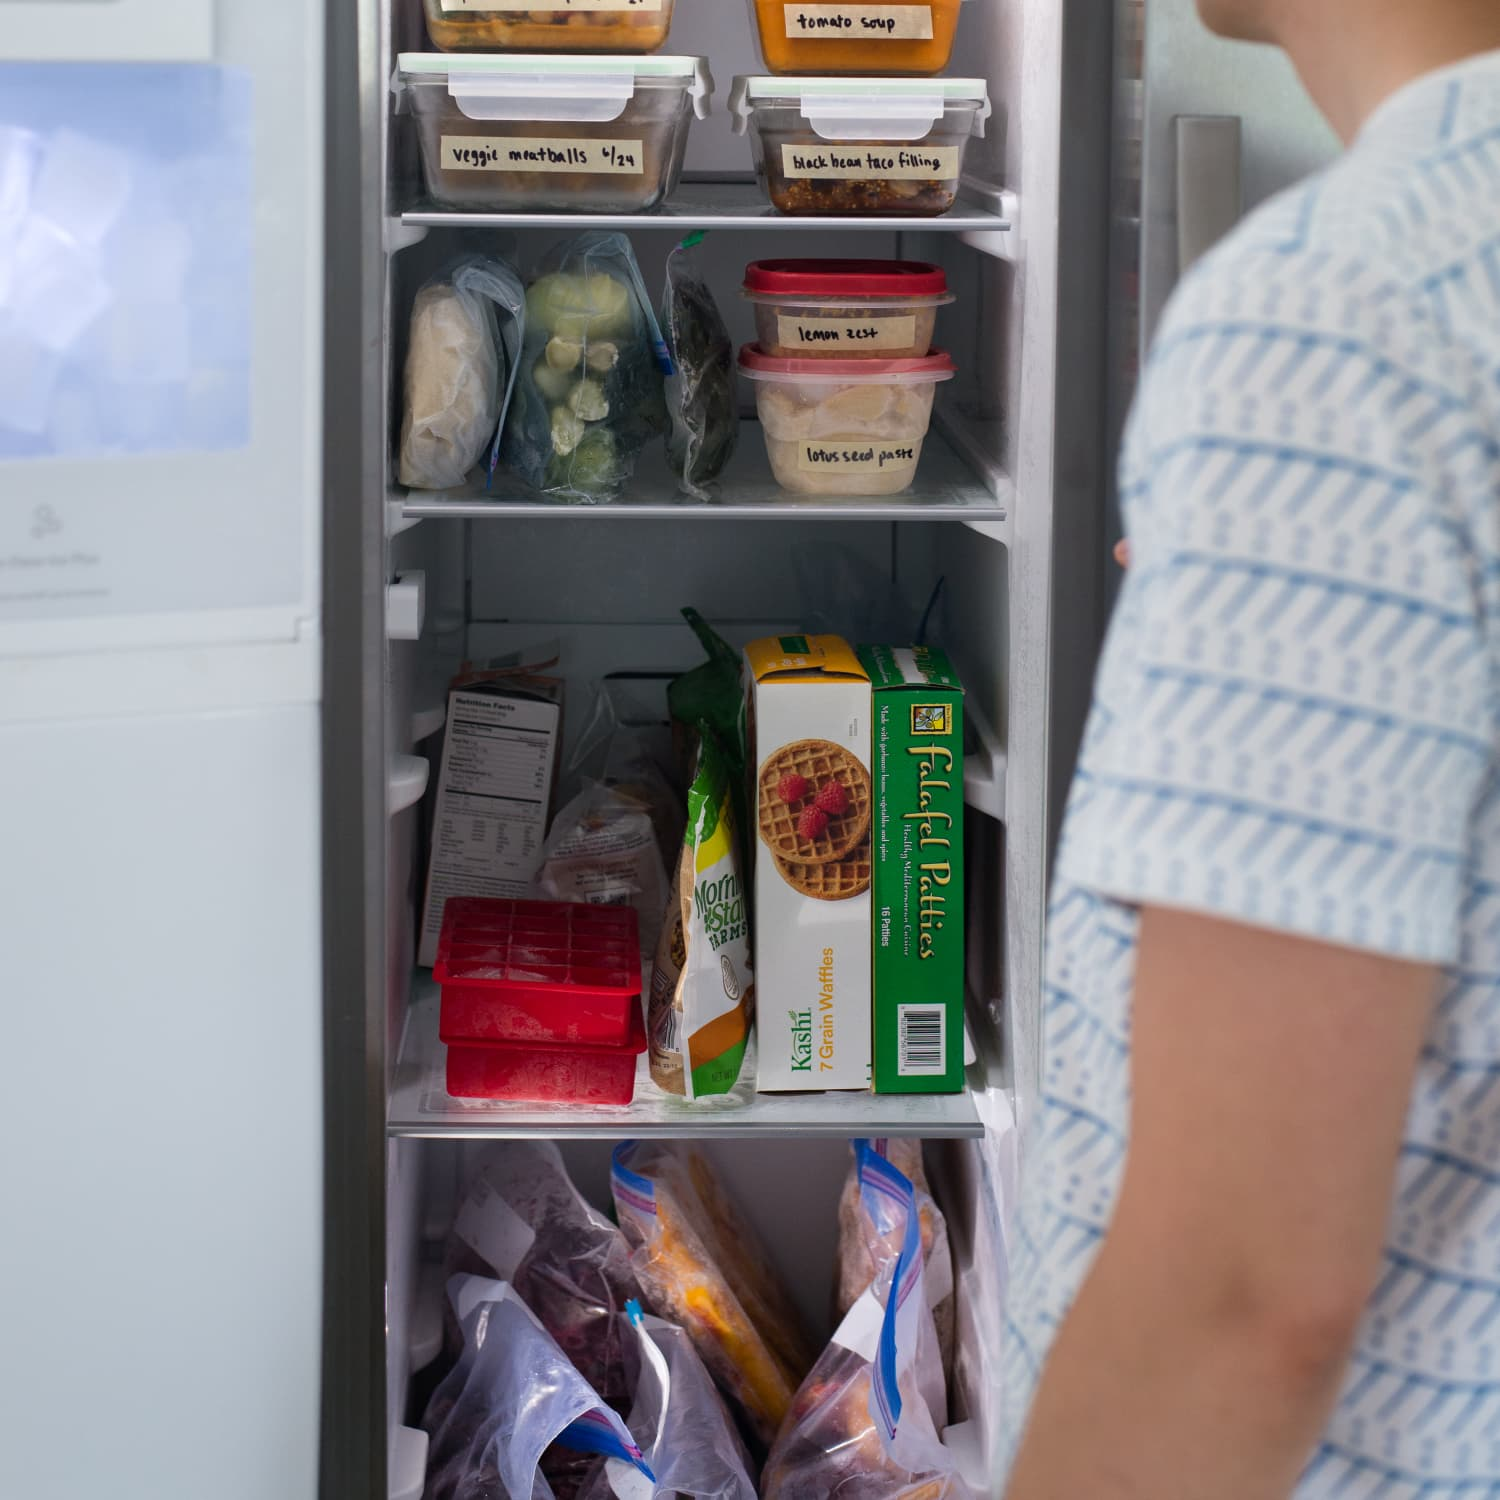 7 Signs Something Has Gone Bad in the Freezer | Kitchn